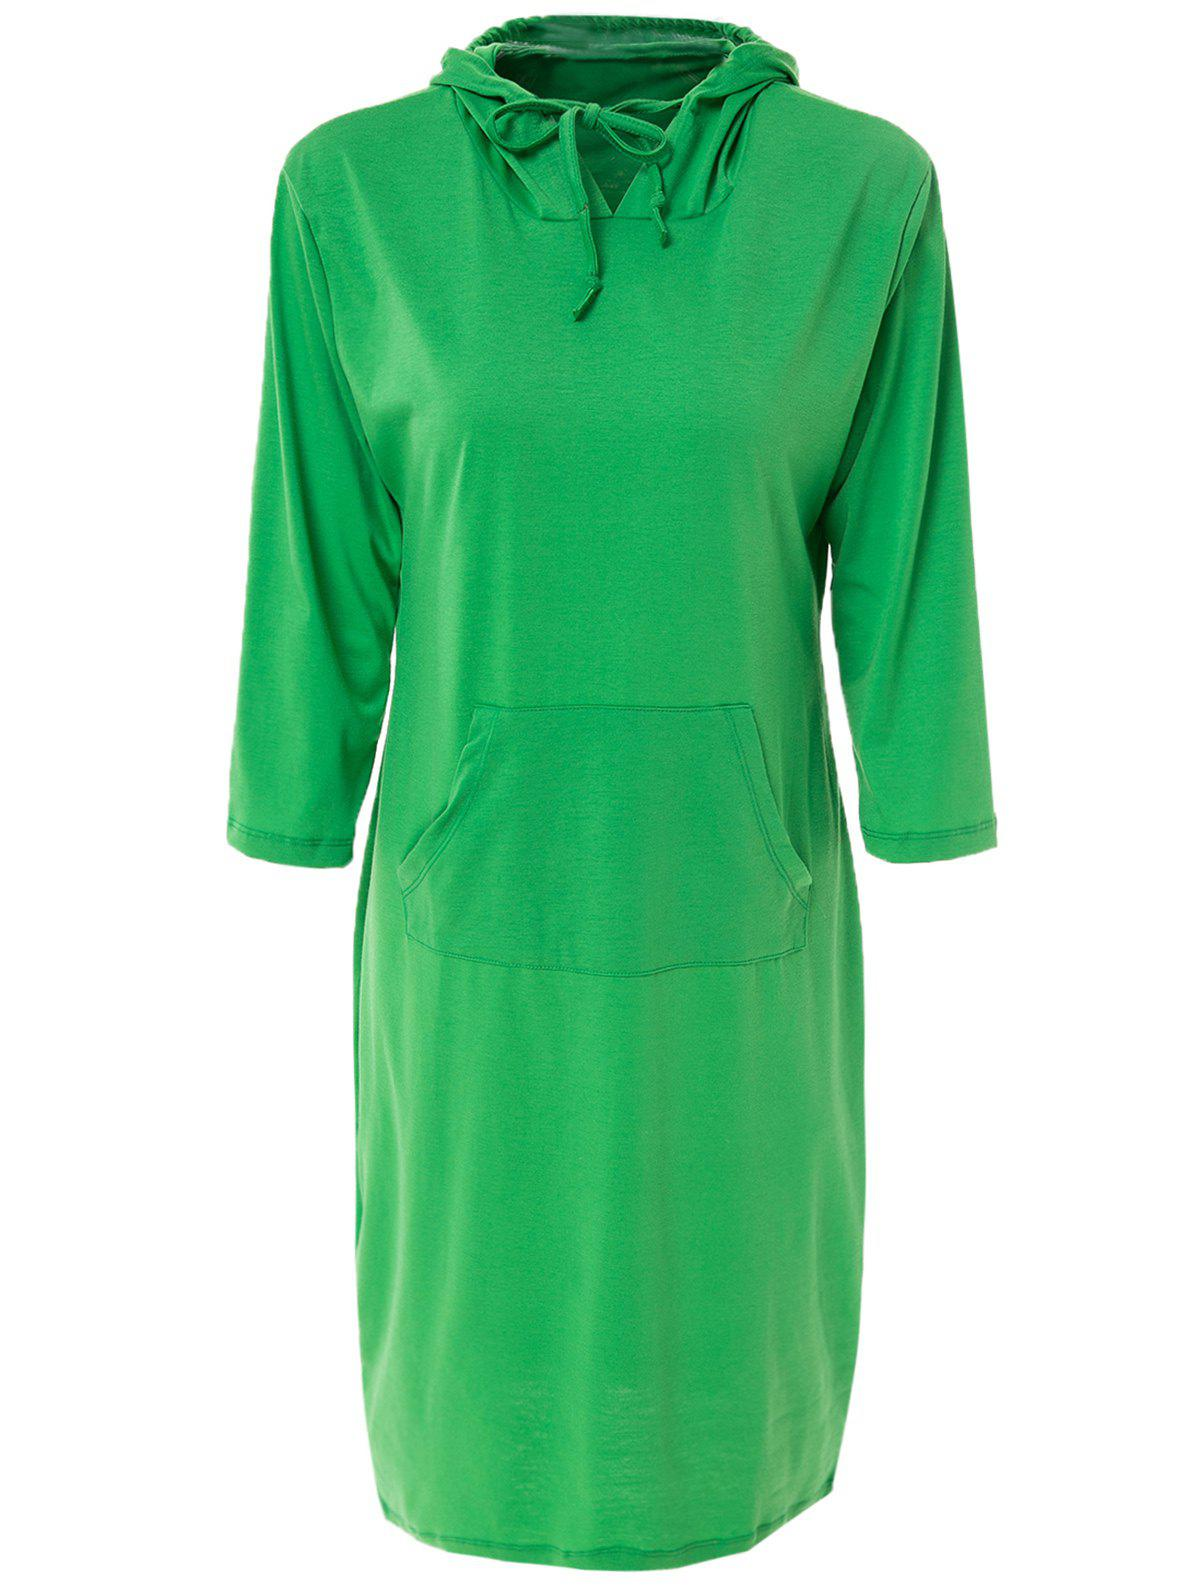 Chic Solid Color Hooded 3/4 Sleeve Bodycon Hoodie Dress For Women - GREEN S